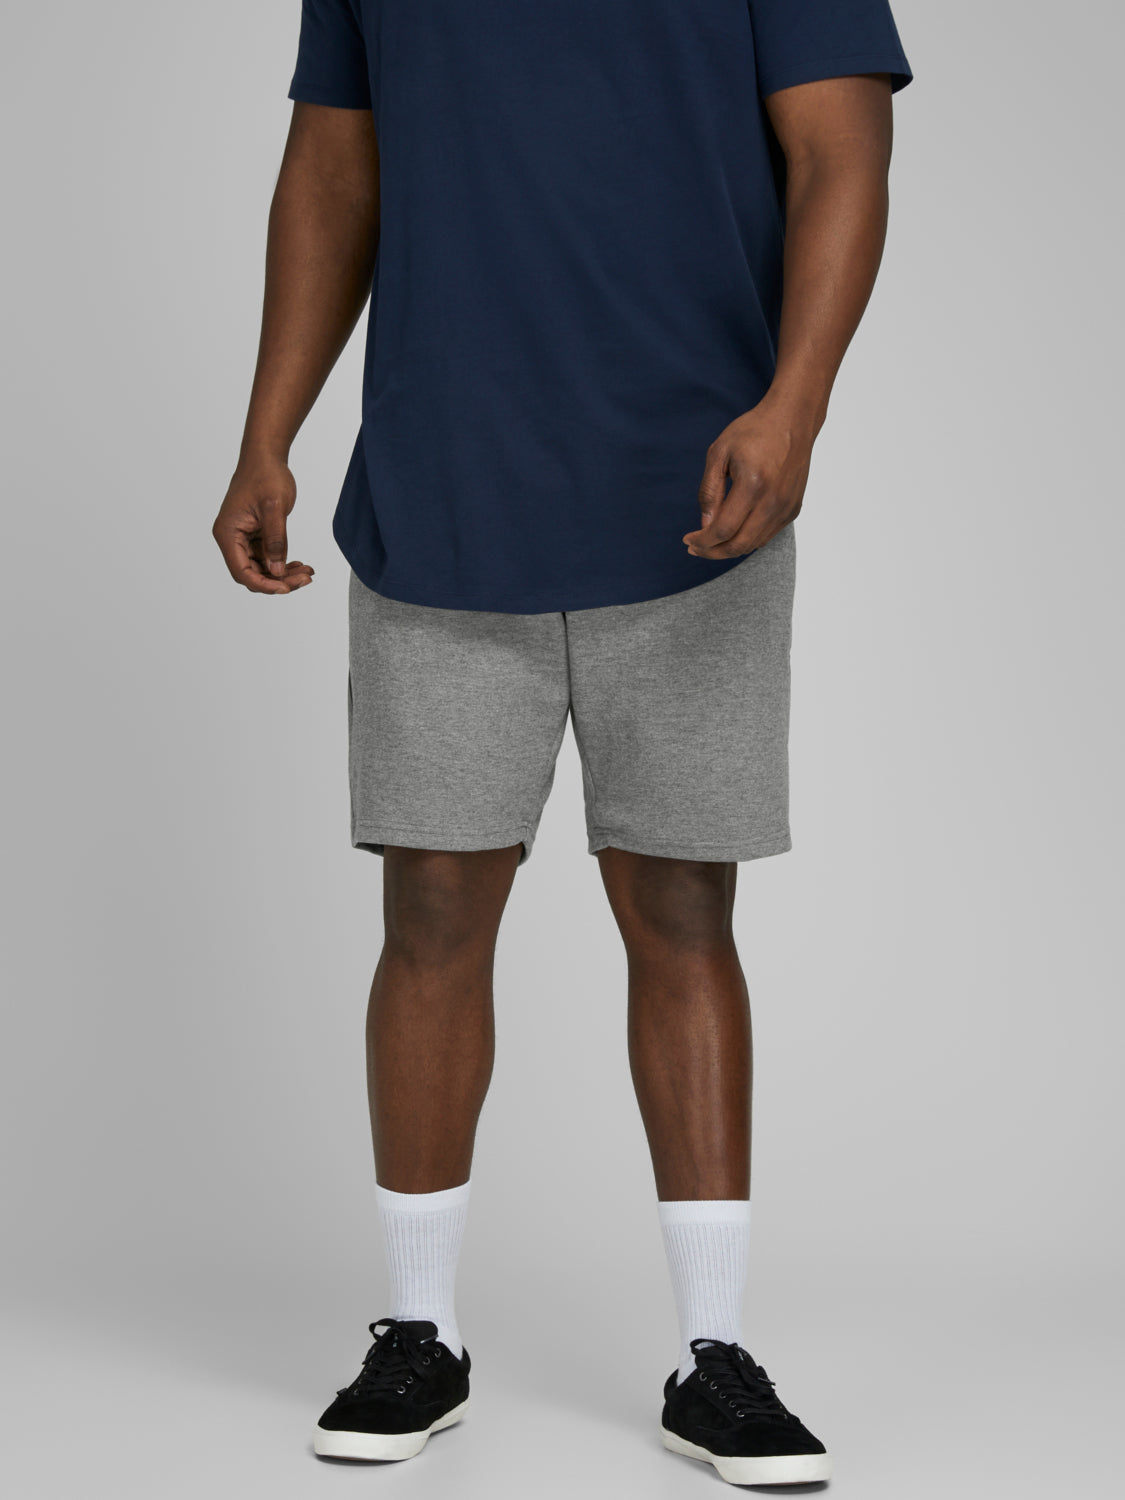 PLUS SIZE - CLEAN SWEAT SHORTS